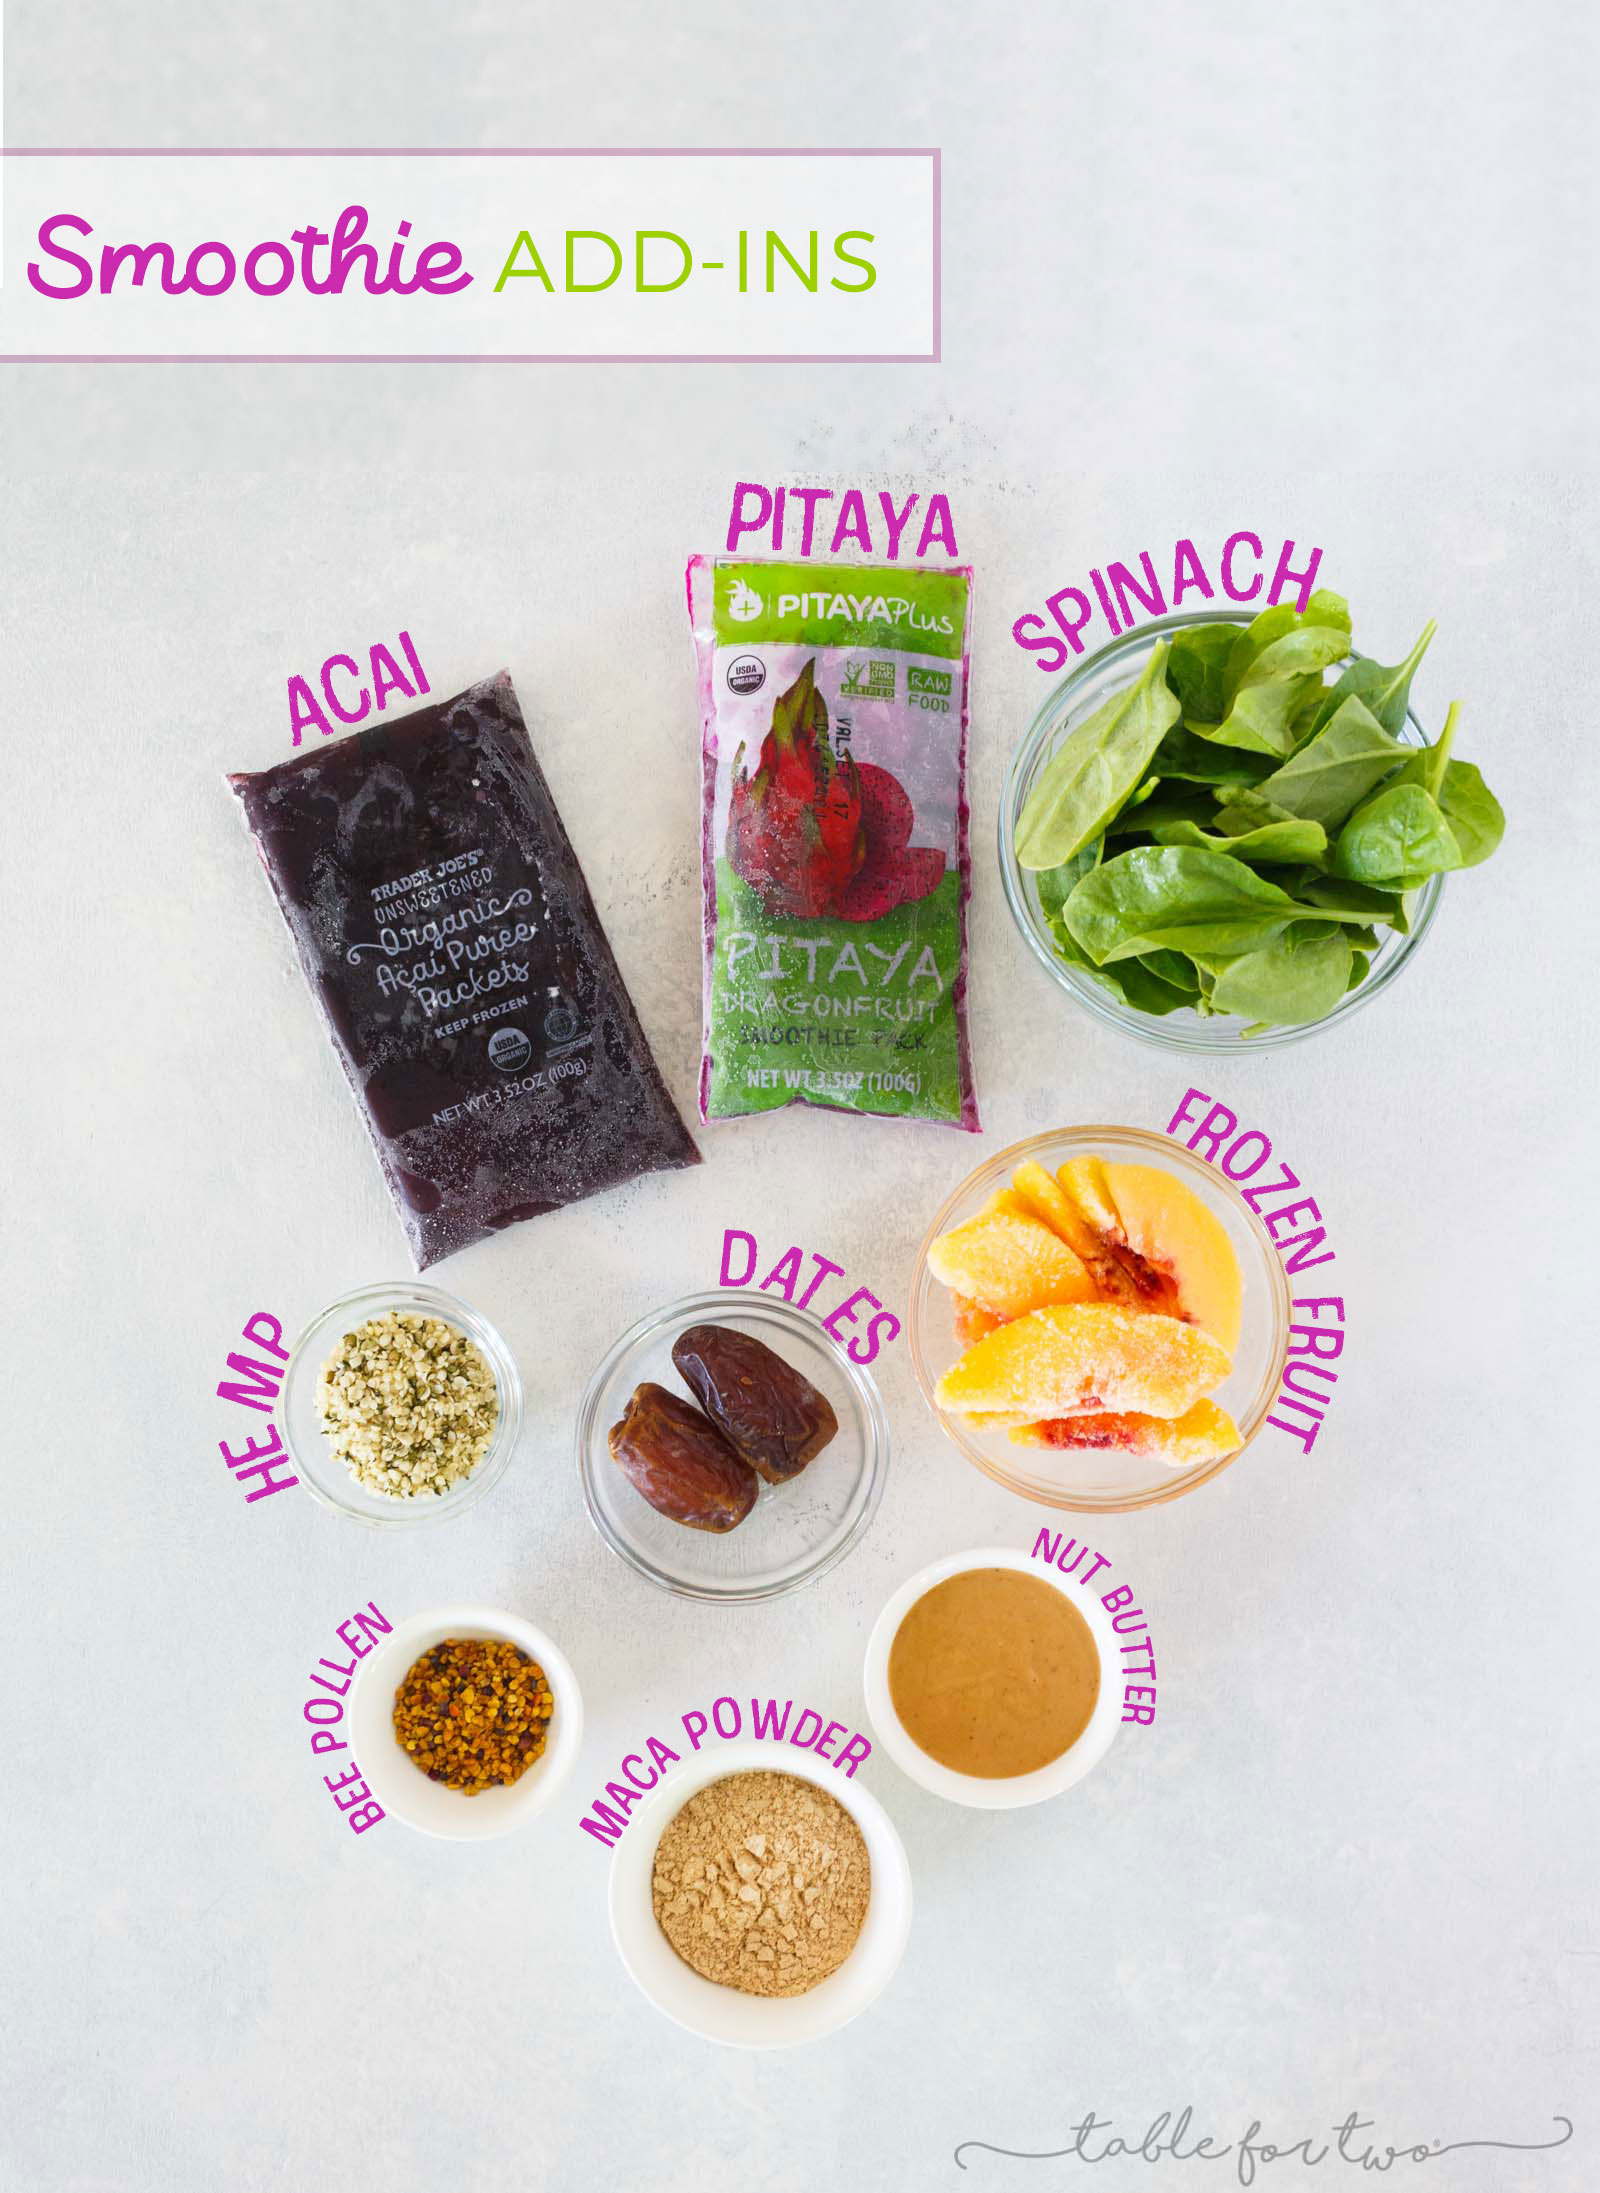 My staple smoothie ingredients and add-ins that are essential for every smoothie I make!